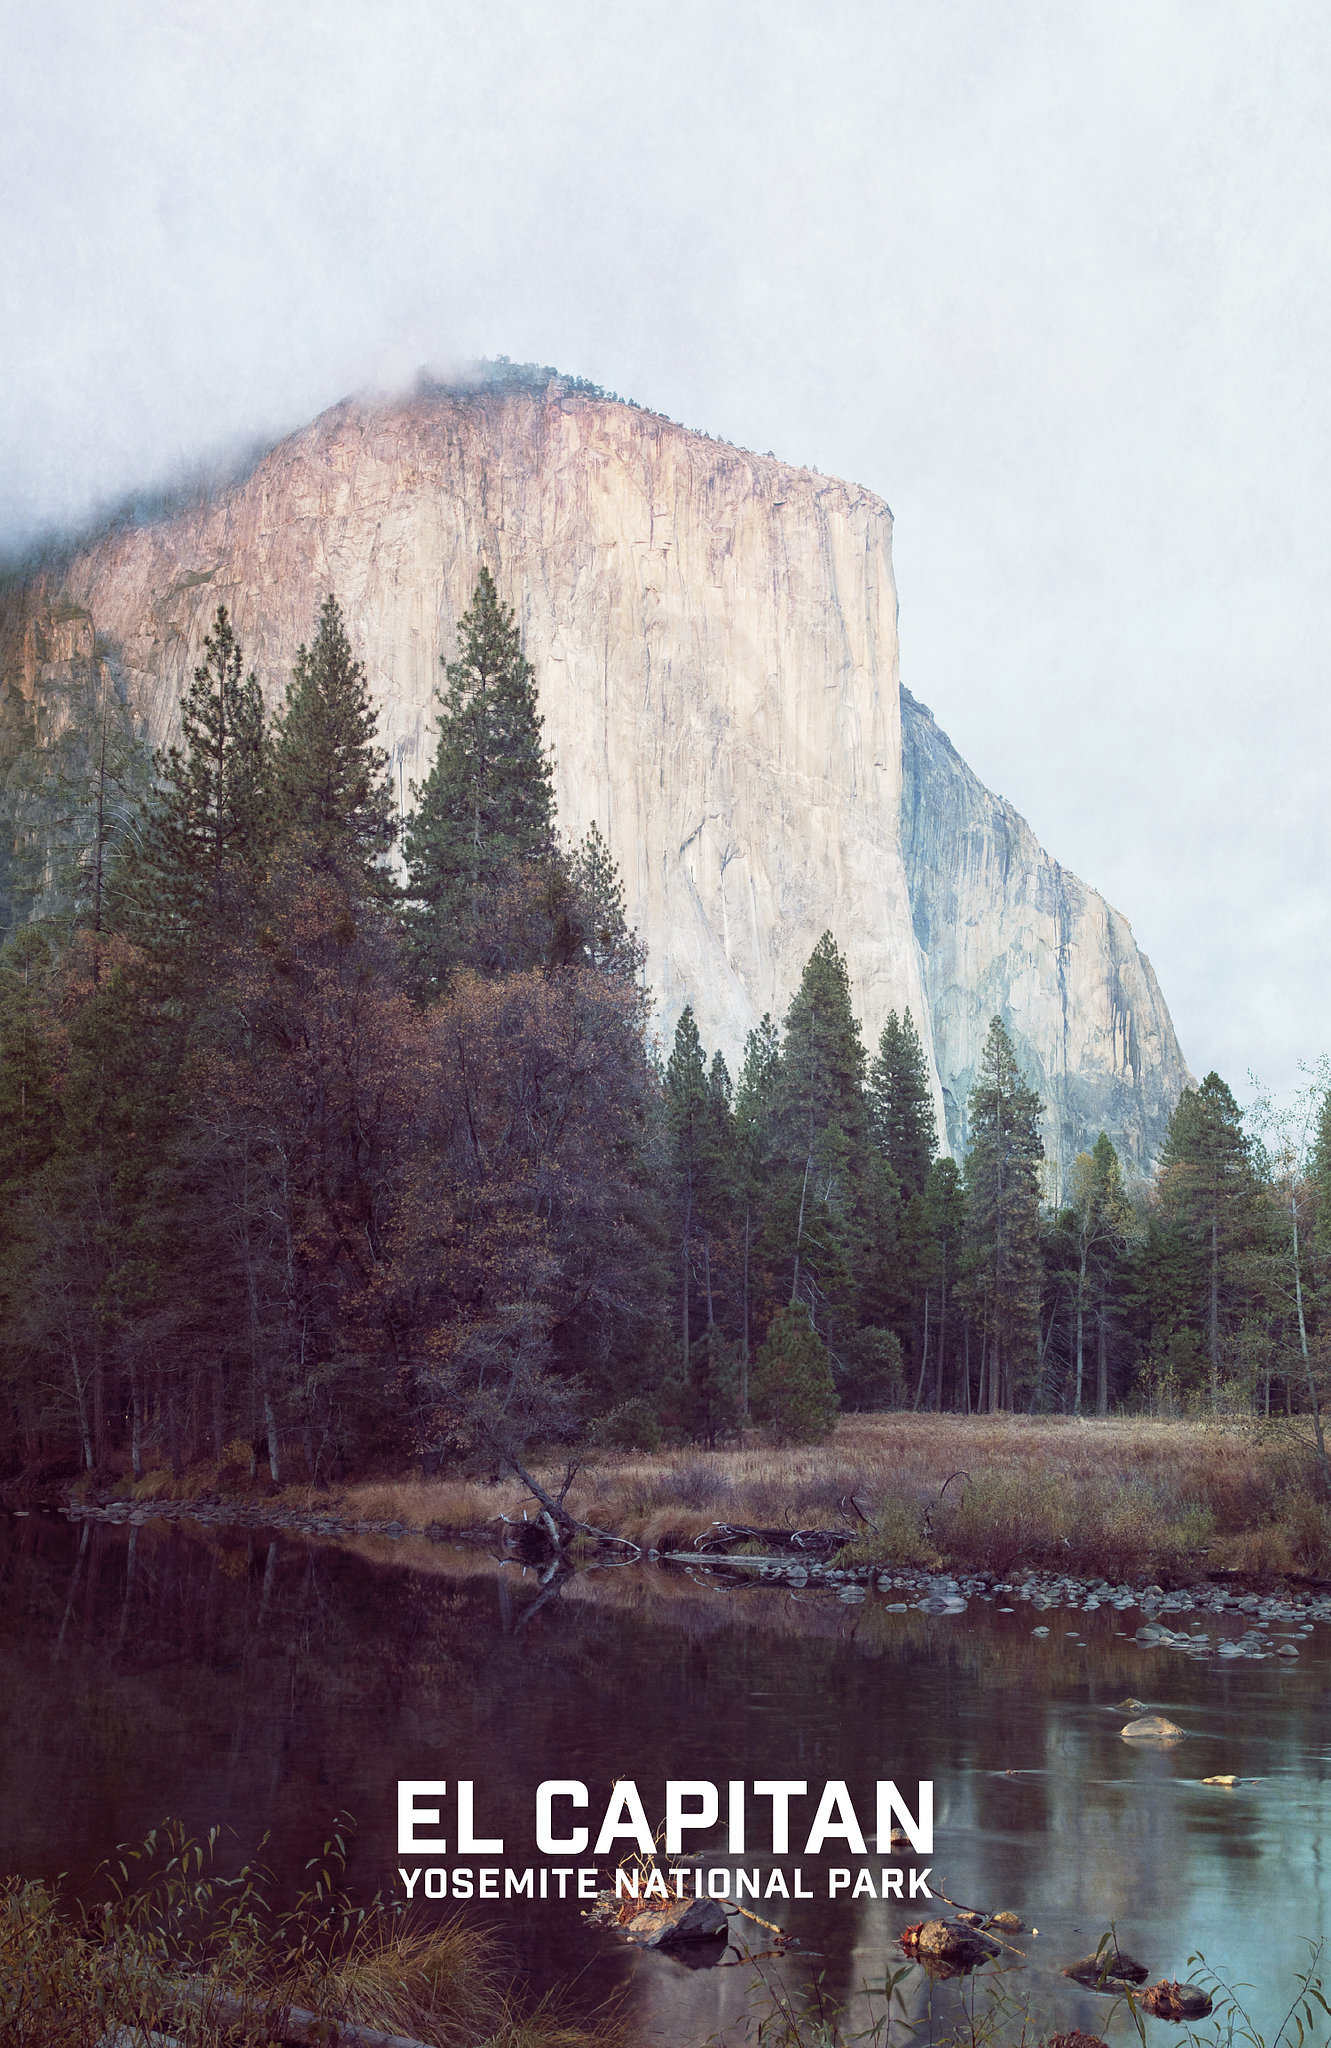 El Capitan Yosemite National Park ($15-$40)